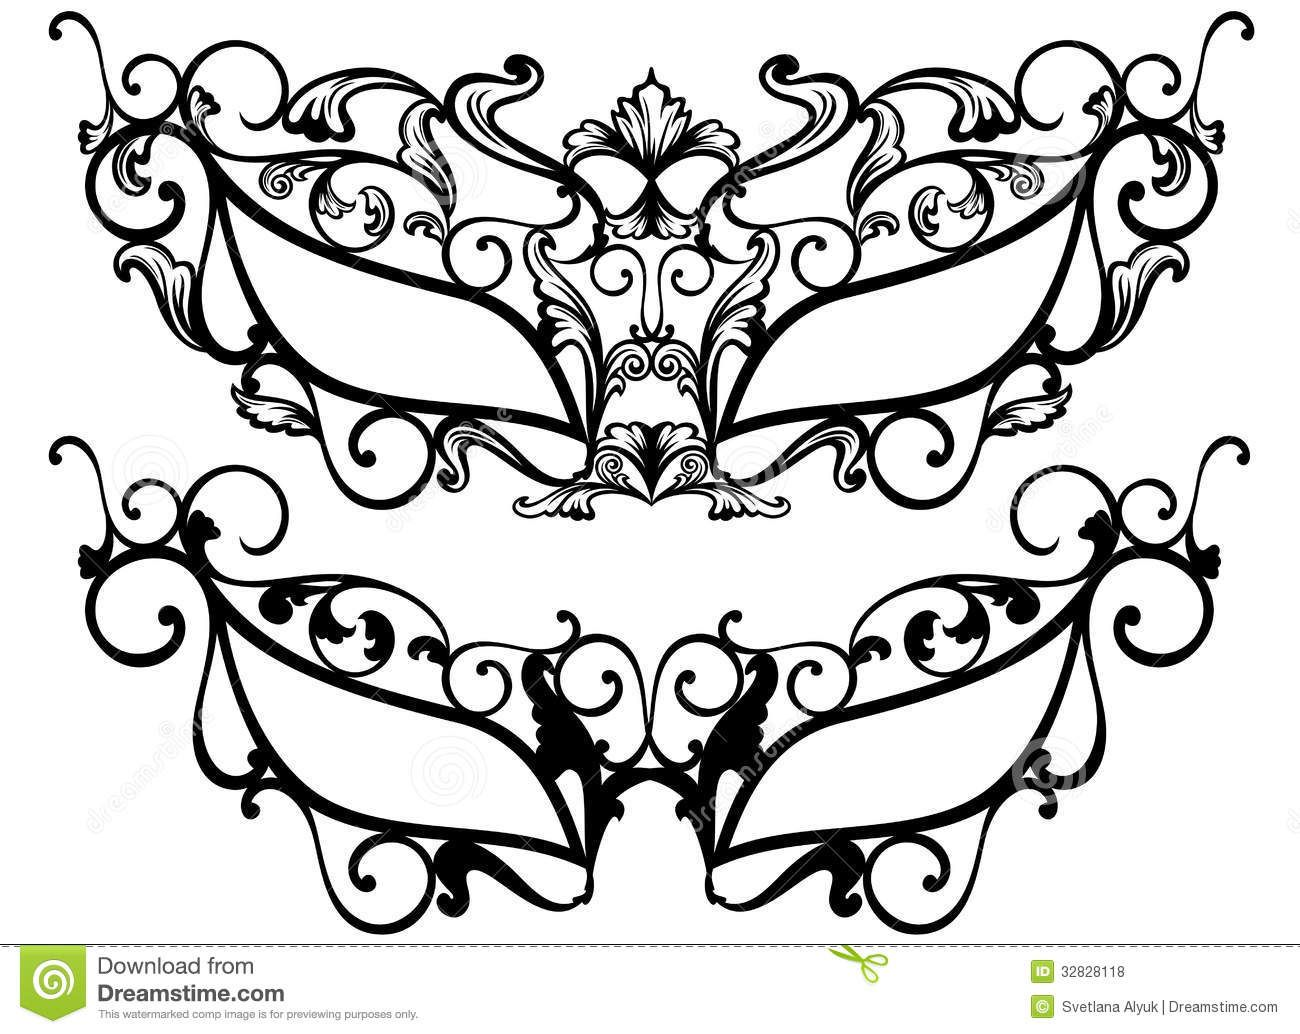 Masquerade Masks Vector Royalty Free Stock Photos   Image: 32828118  Free Mask Templates